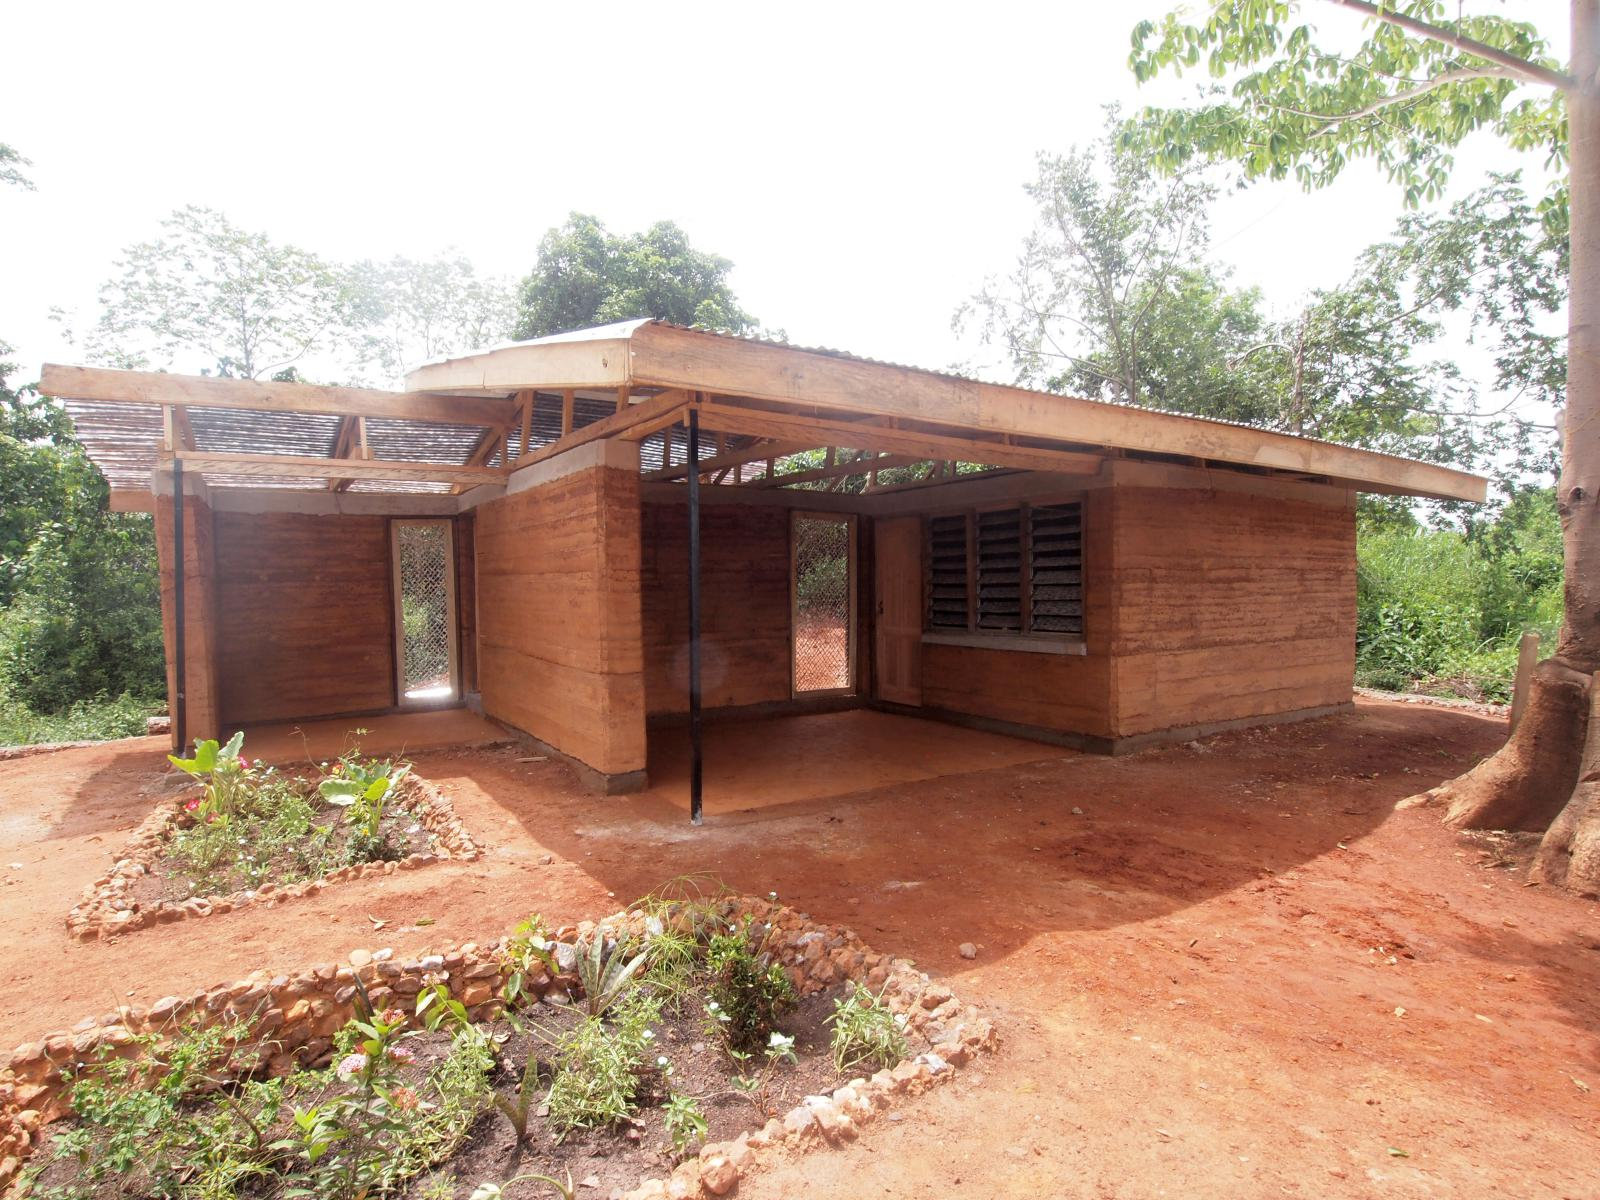 The Nkabom House A Case Study For Earth Construction And Recycling